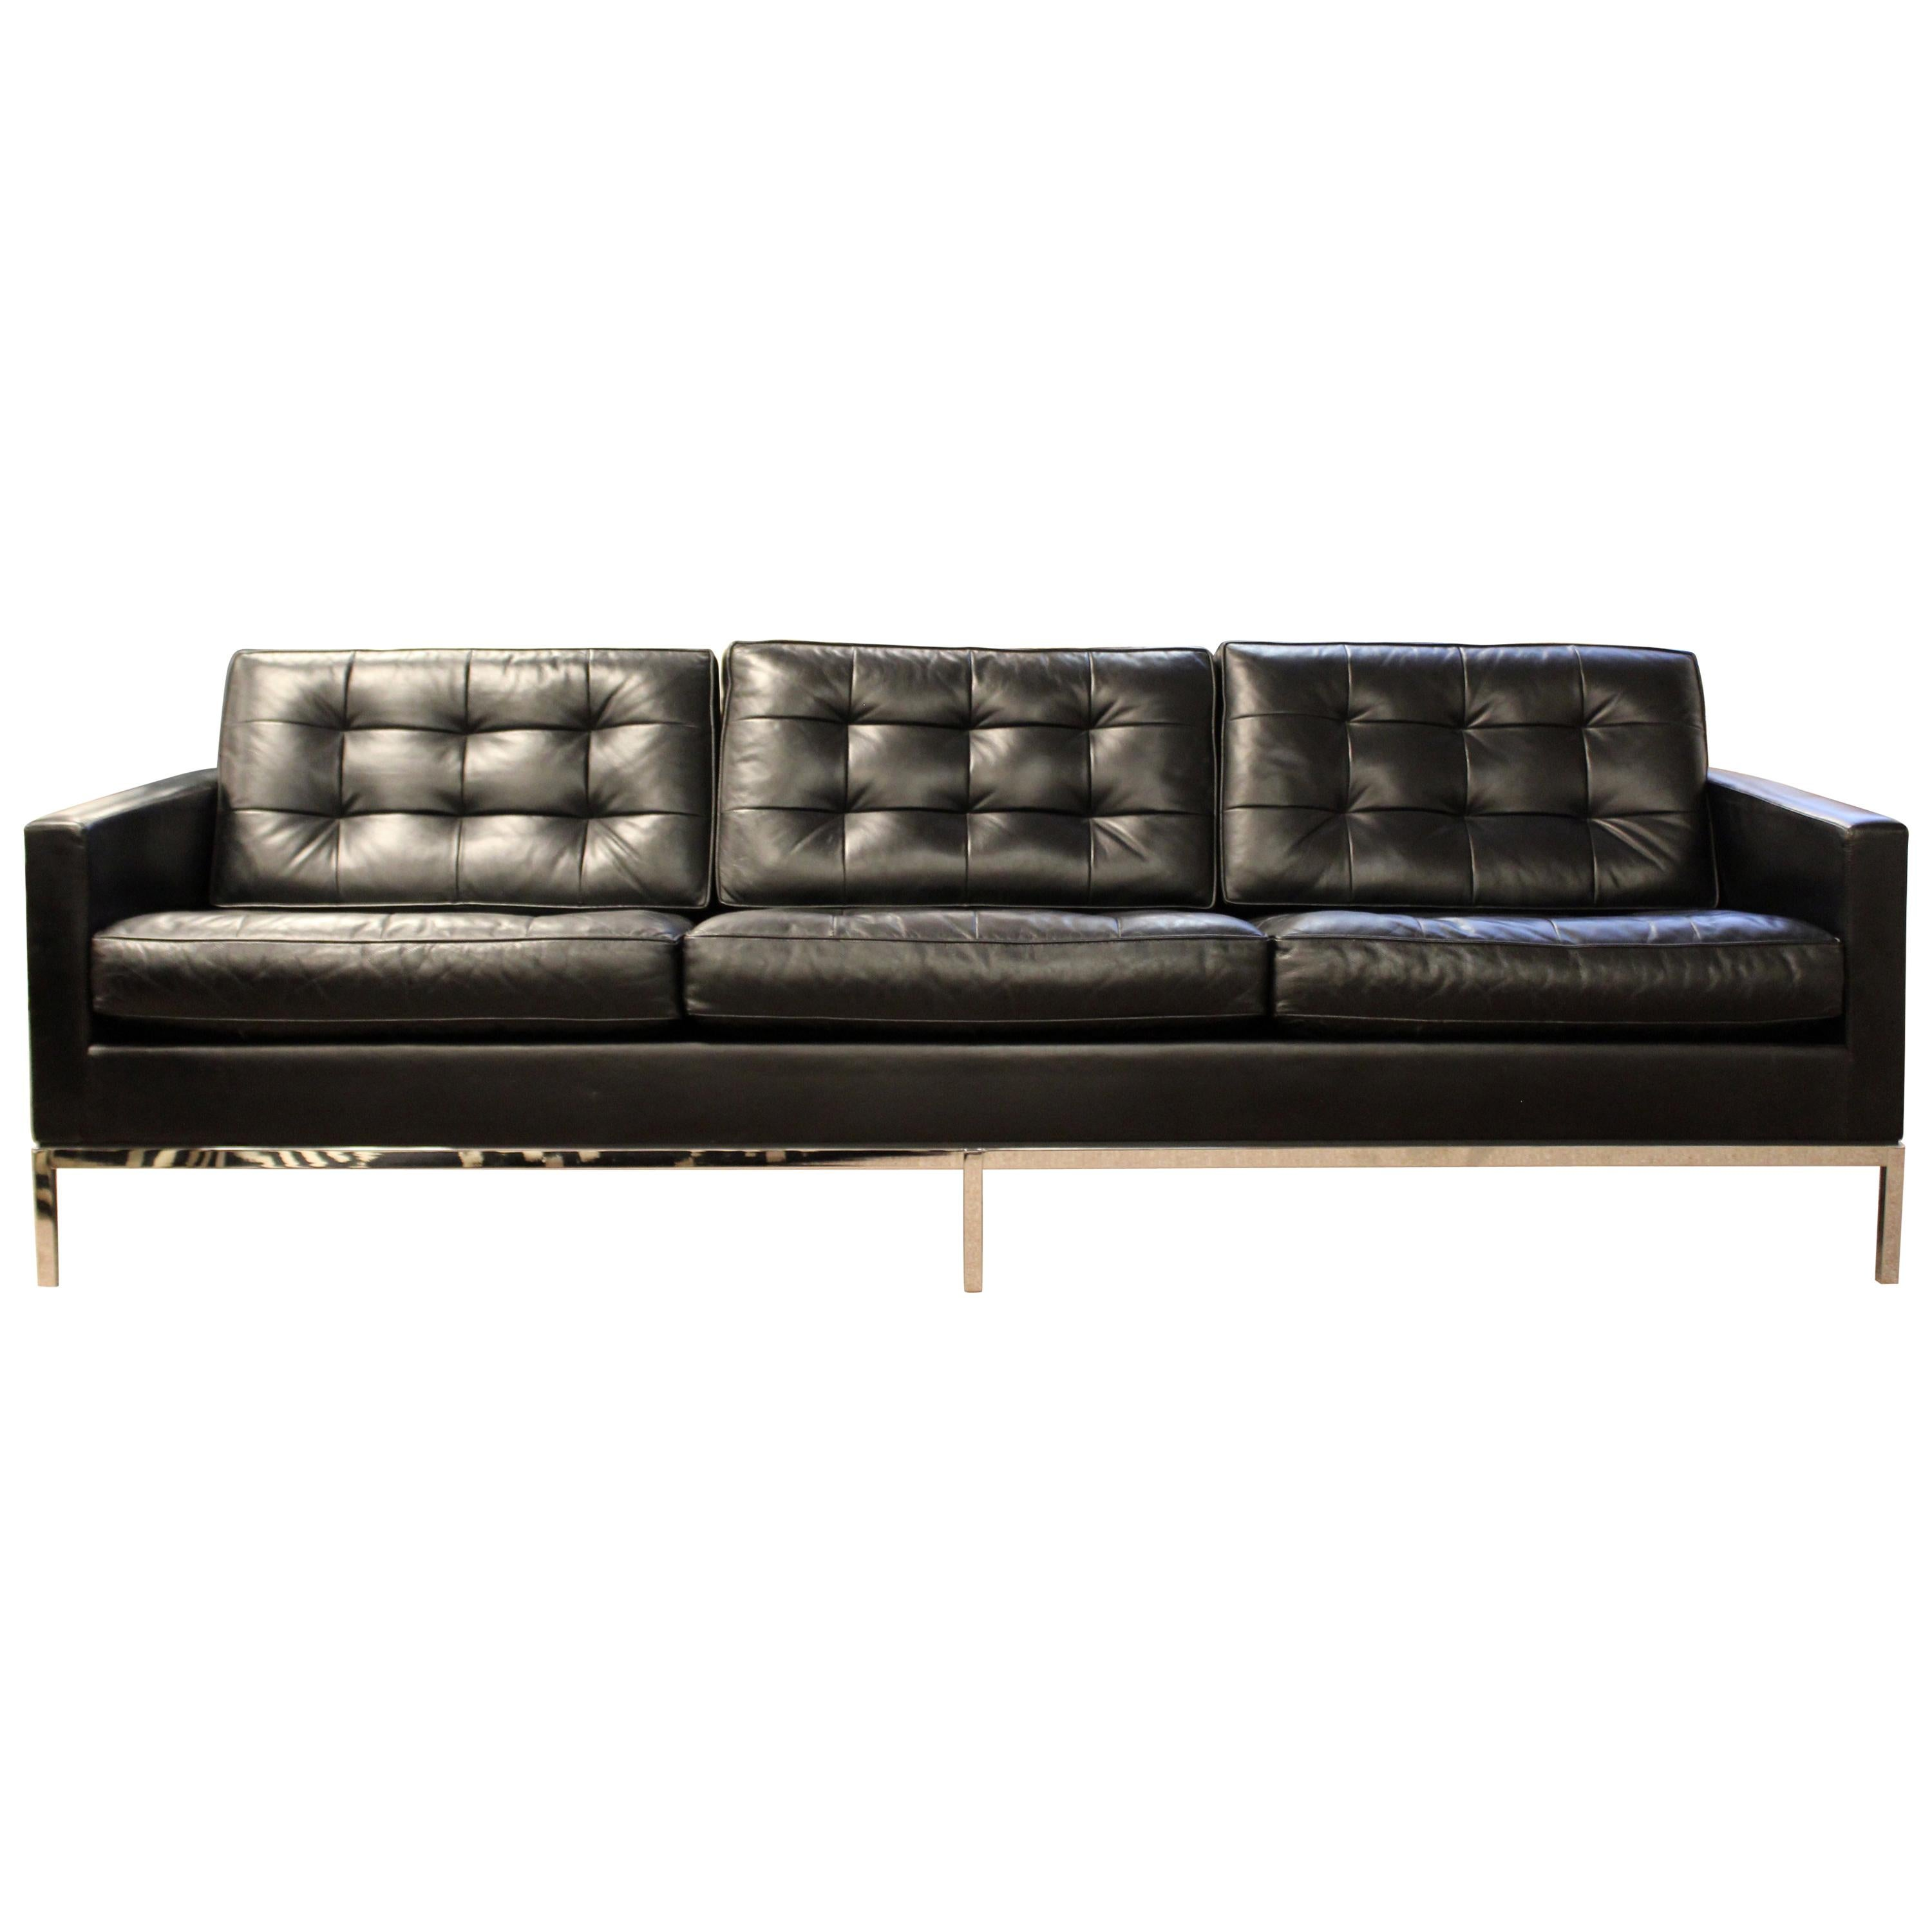 Mid Century Modern Florence Knoll Chrome Sofa Black Tufted Leather, 1960s